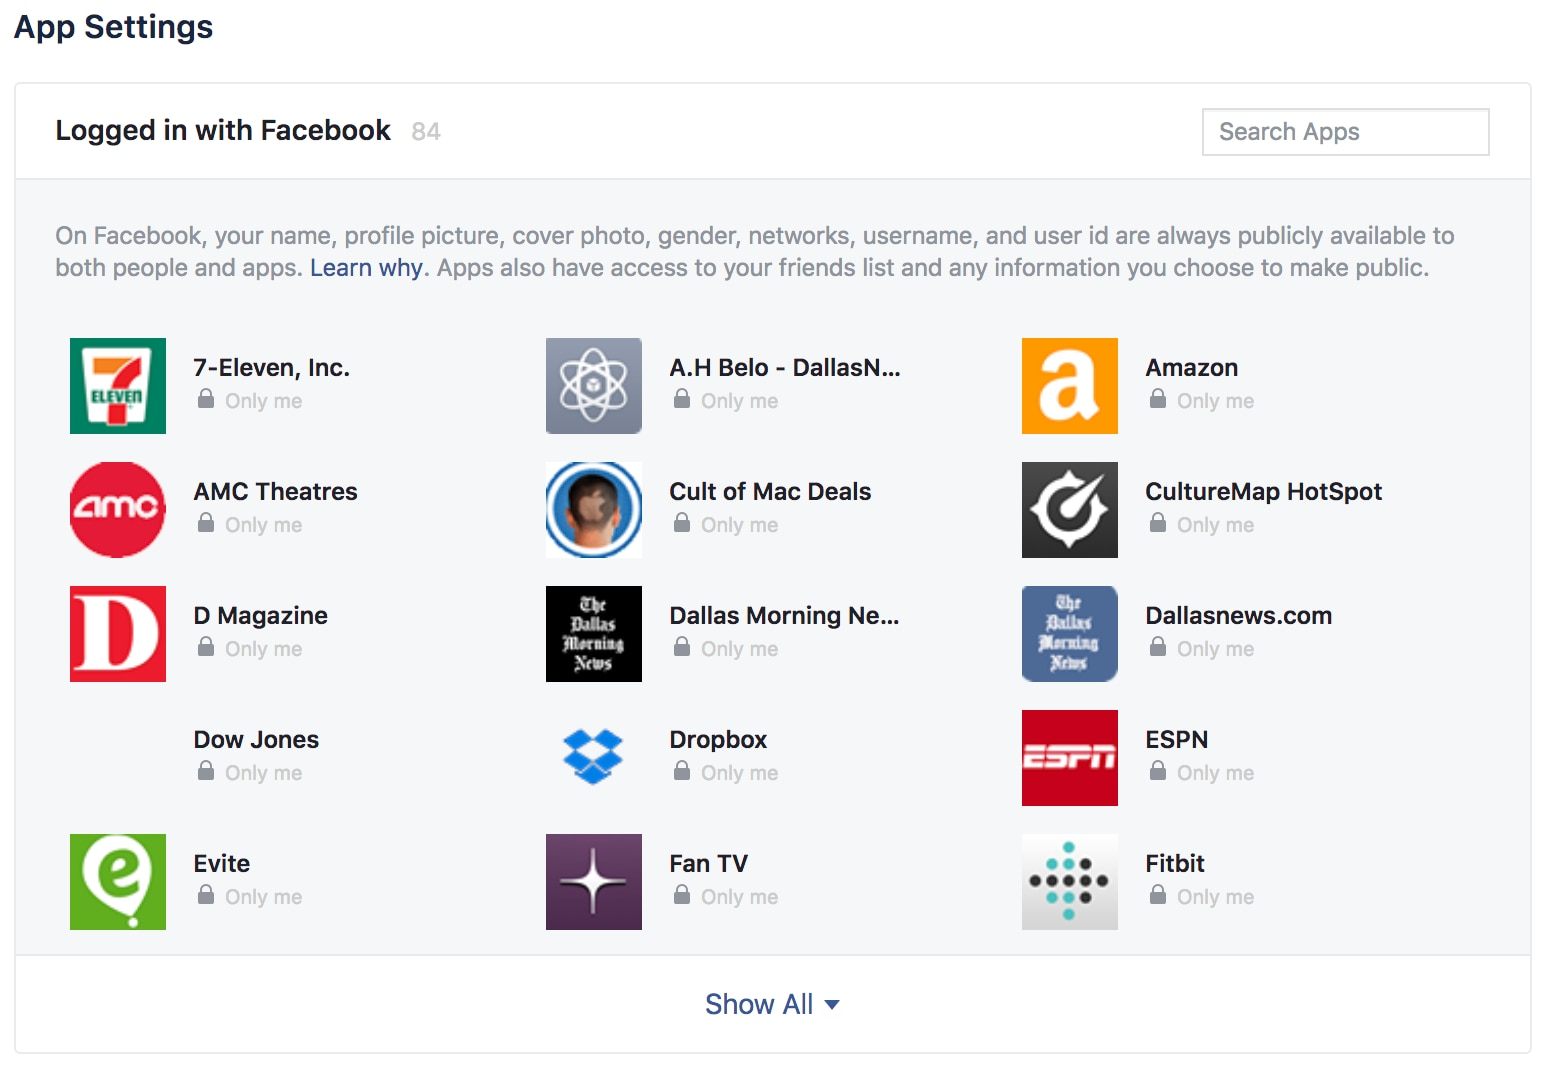 Here are just a few of the apps and sites I'm sharing some Facebook data with.